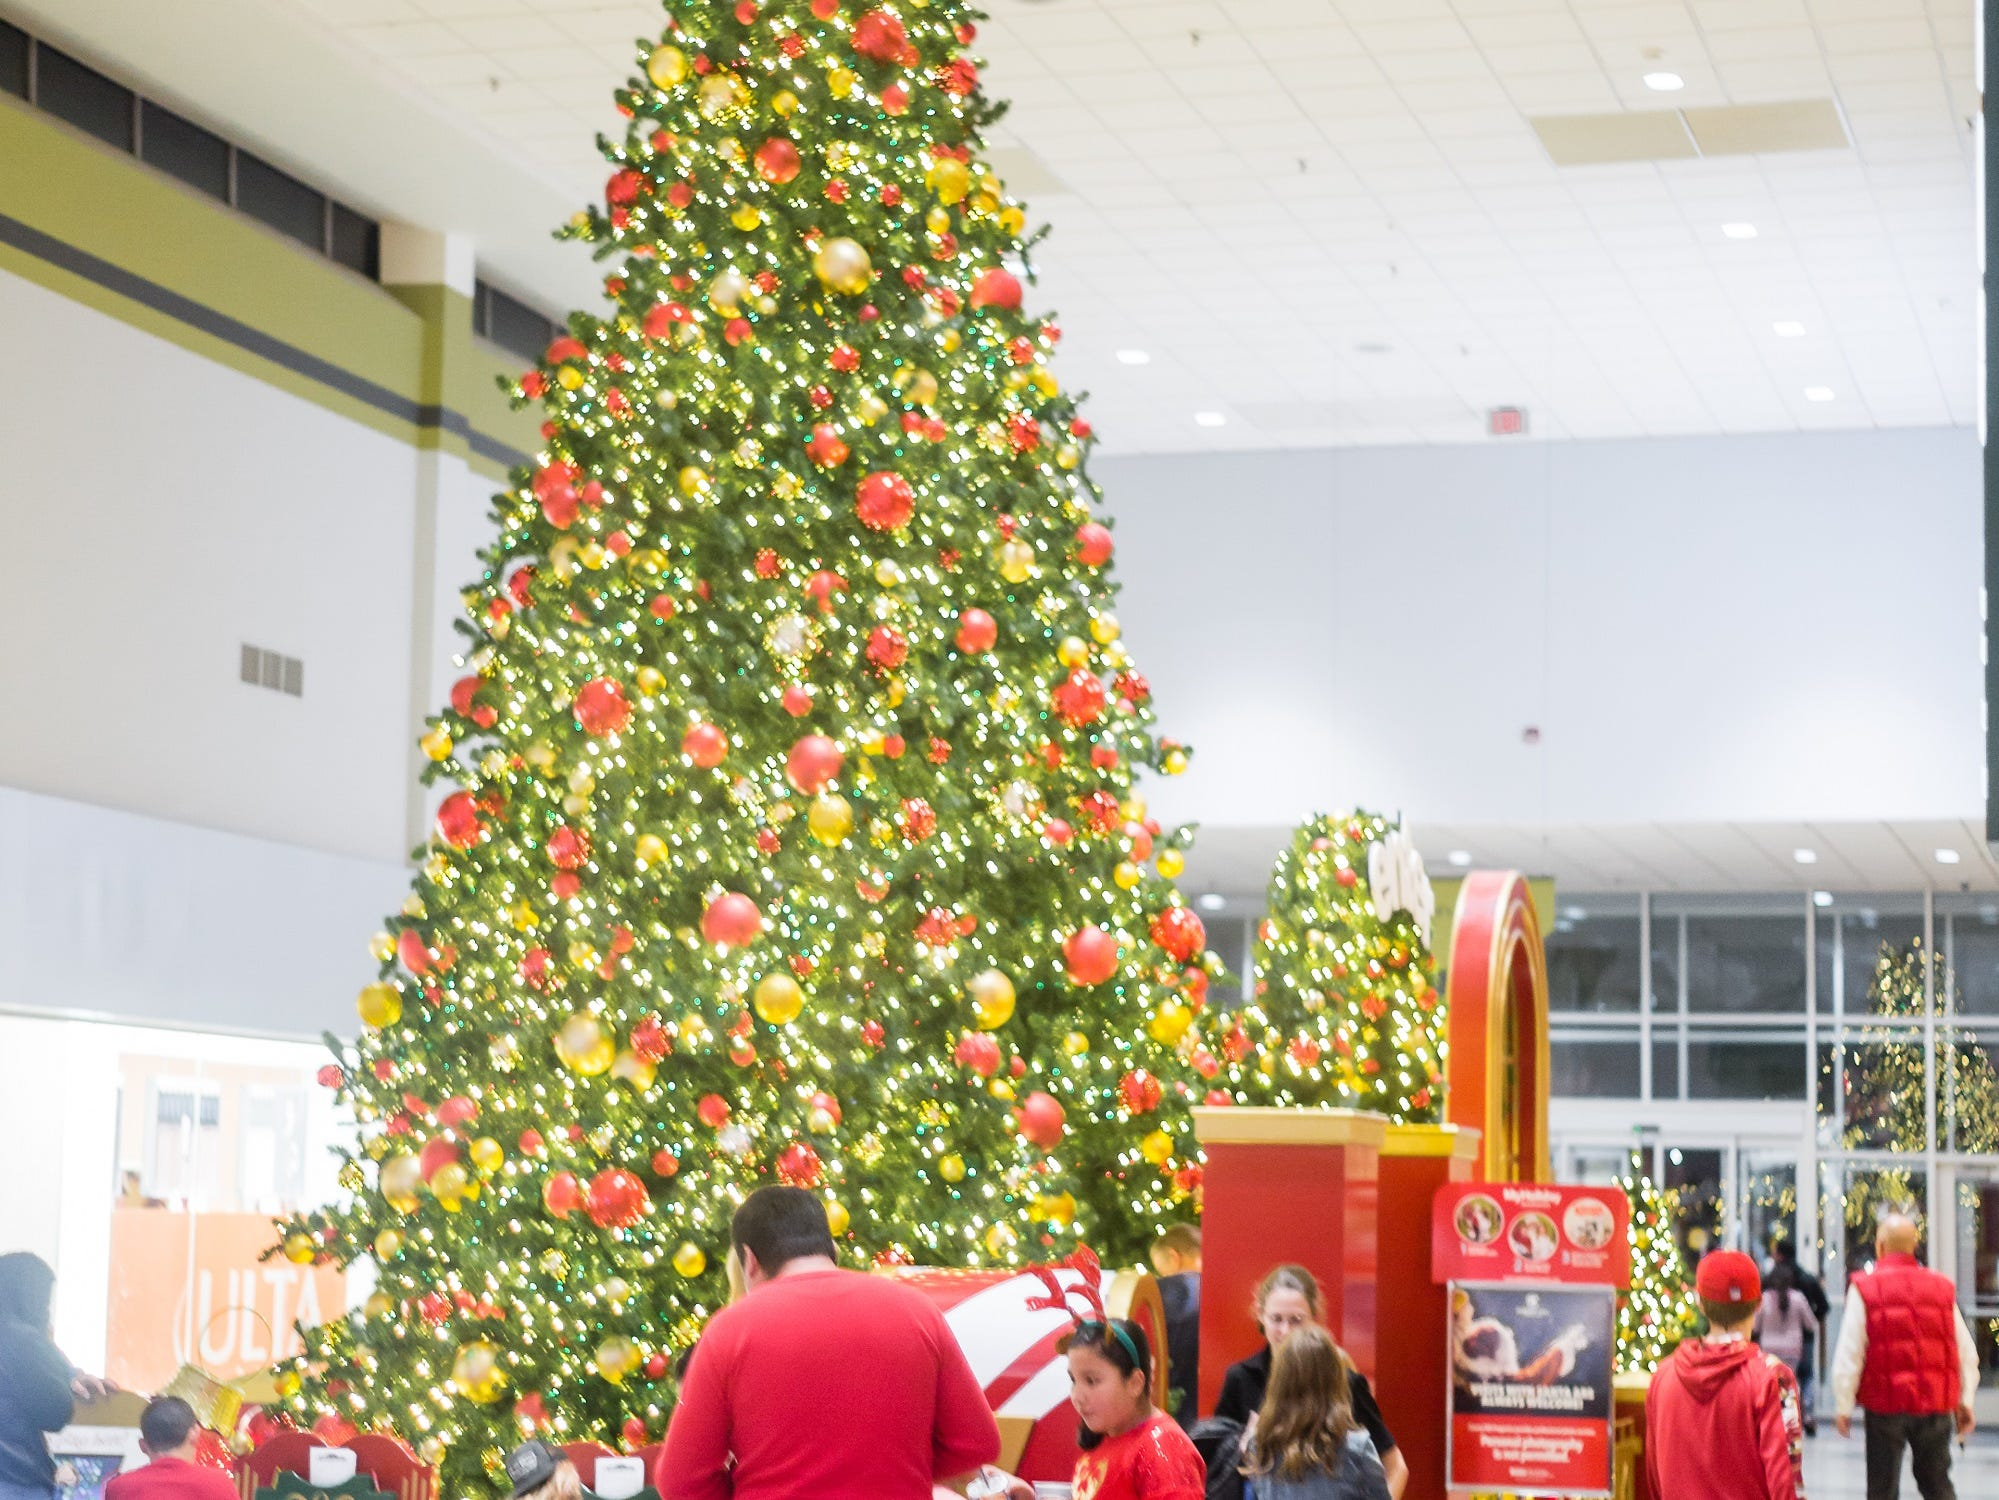 With the Ingles Giving Tree in place and collecting donations for MANNA FoodBank, the Asheville Mall is fully decorated for Christmas, including a home for visits with Santa.